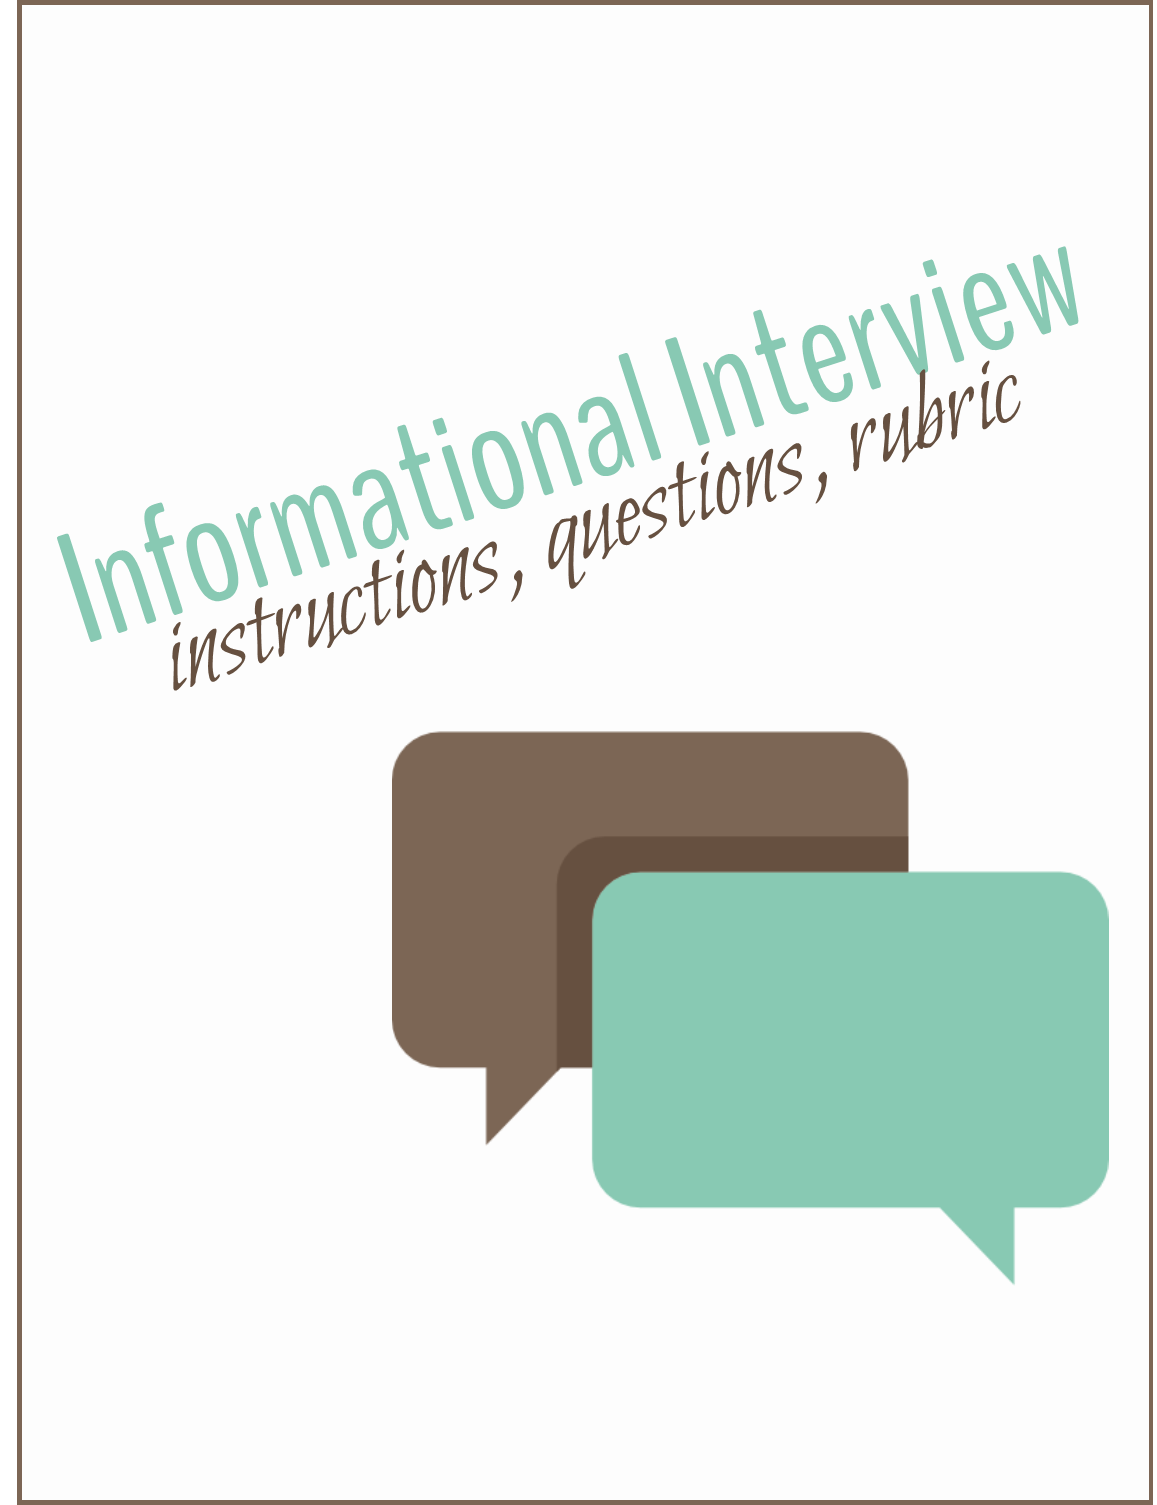 Informational interview powerpoint presentation overview document this zipped file includes an informational interview powerpoint presentation an overview document with notes and altavistaventures Image collections